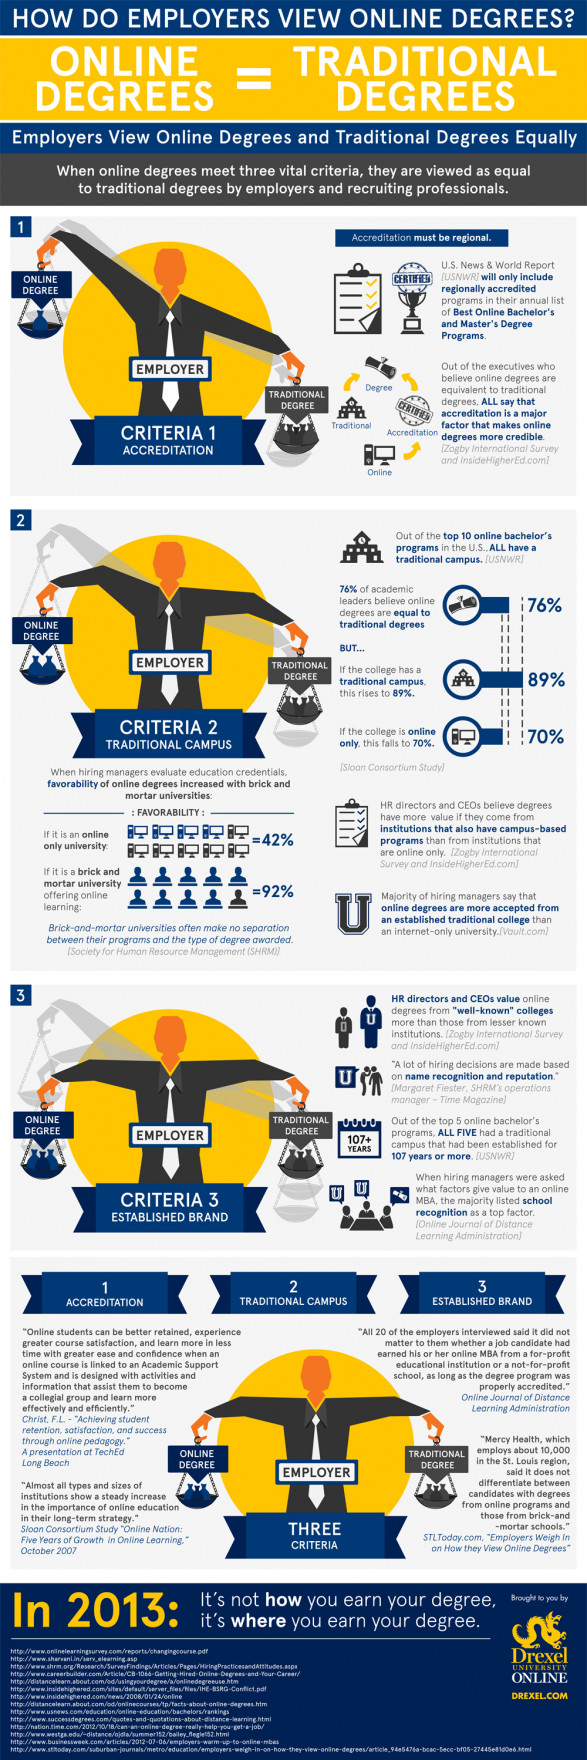 How Do Employers View Online Degrees?